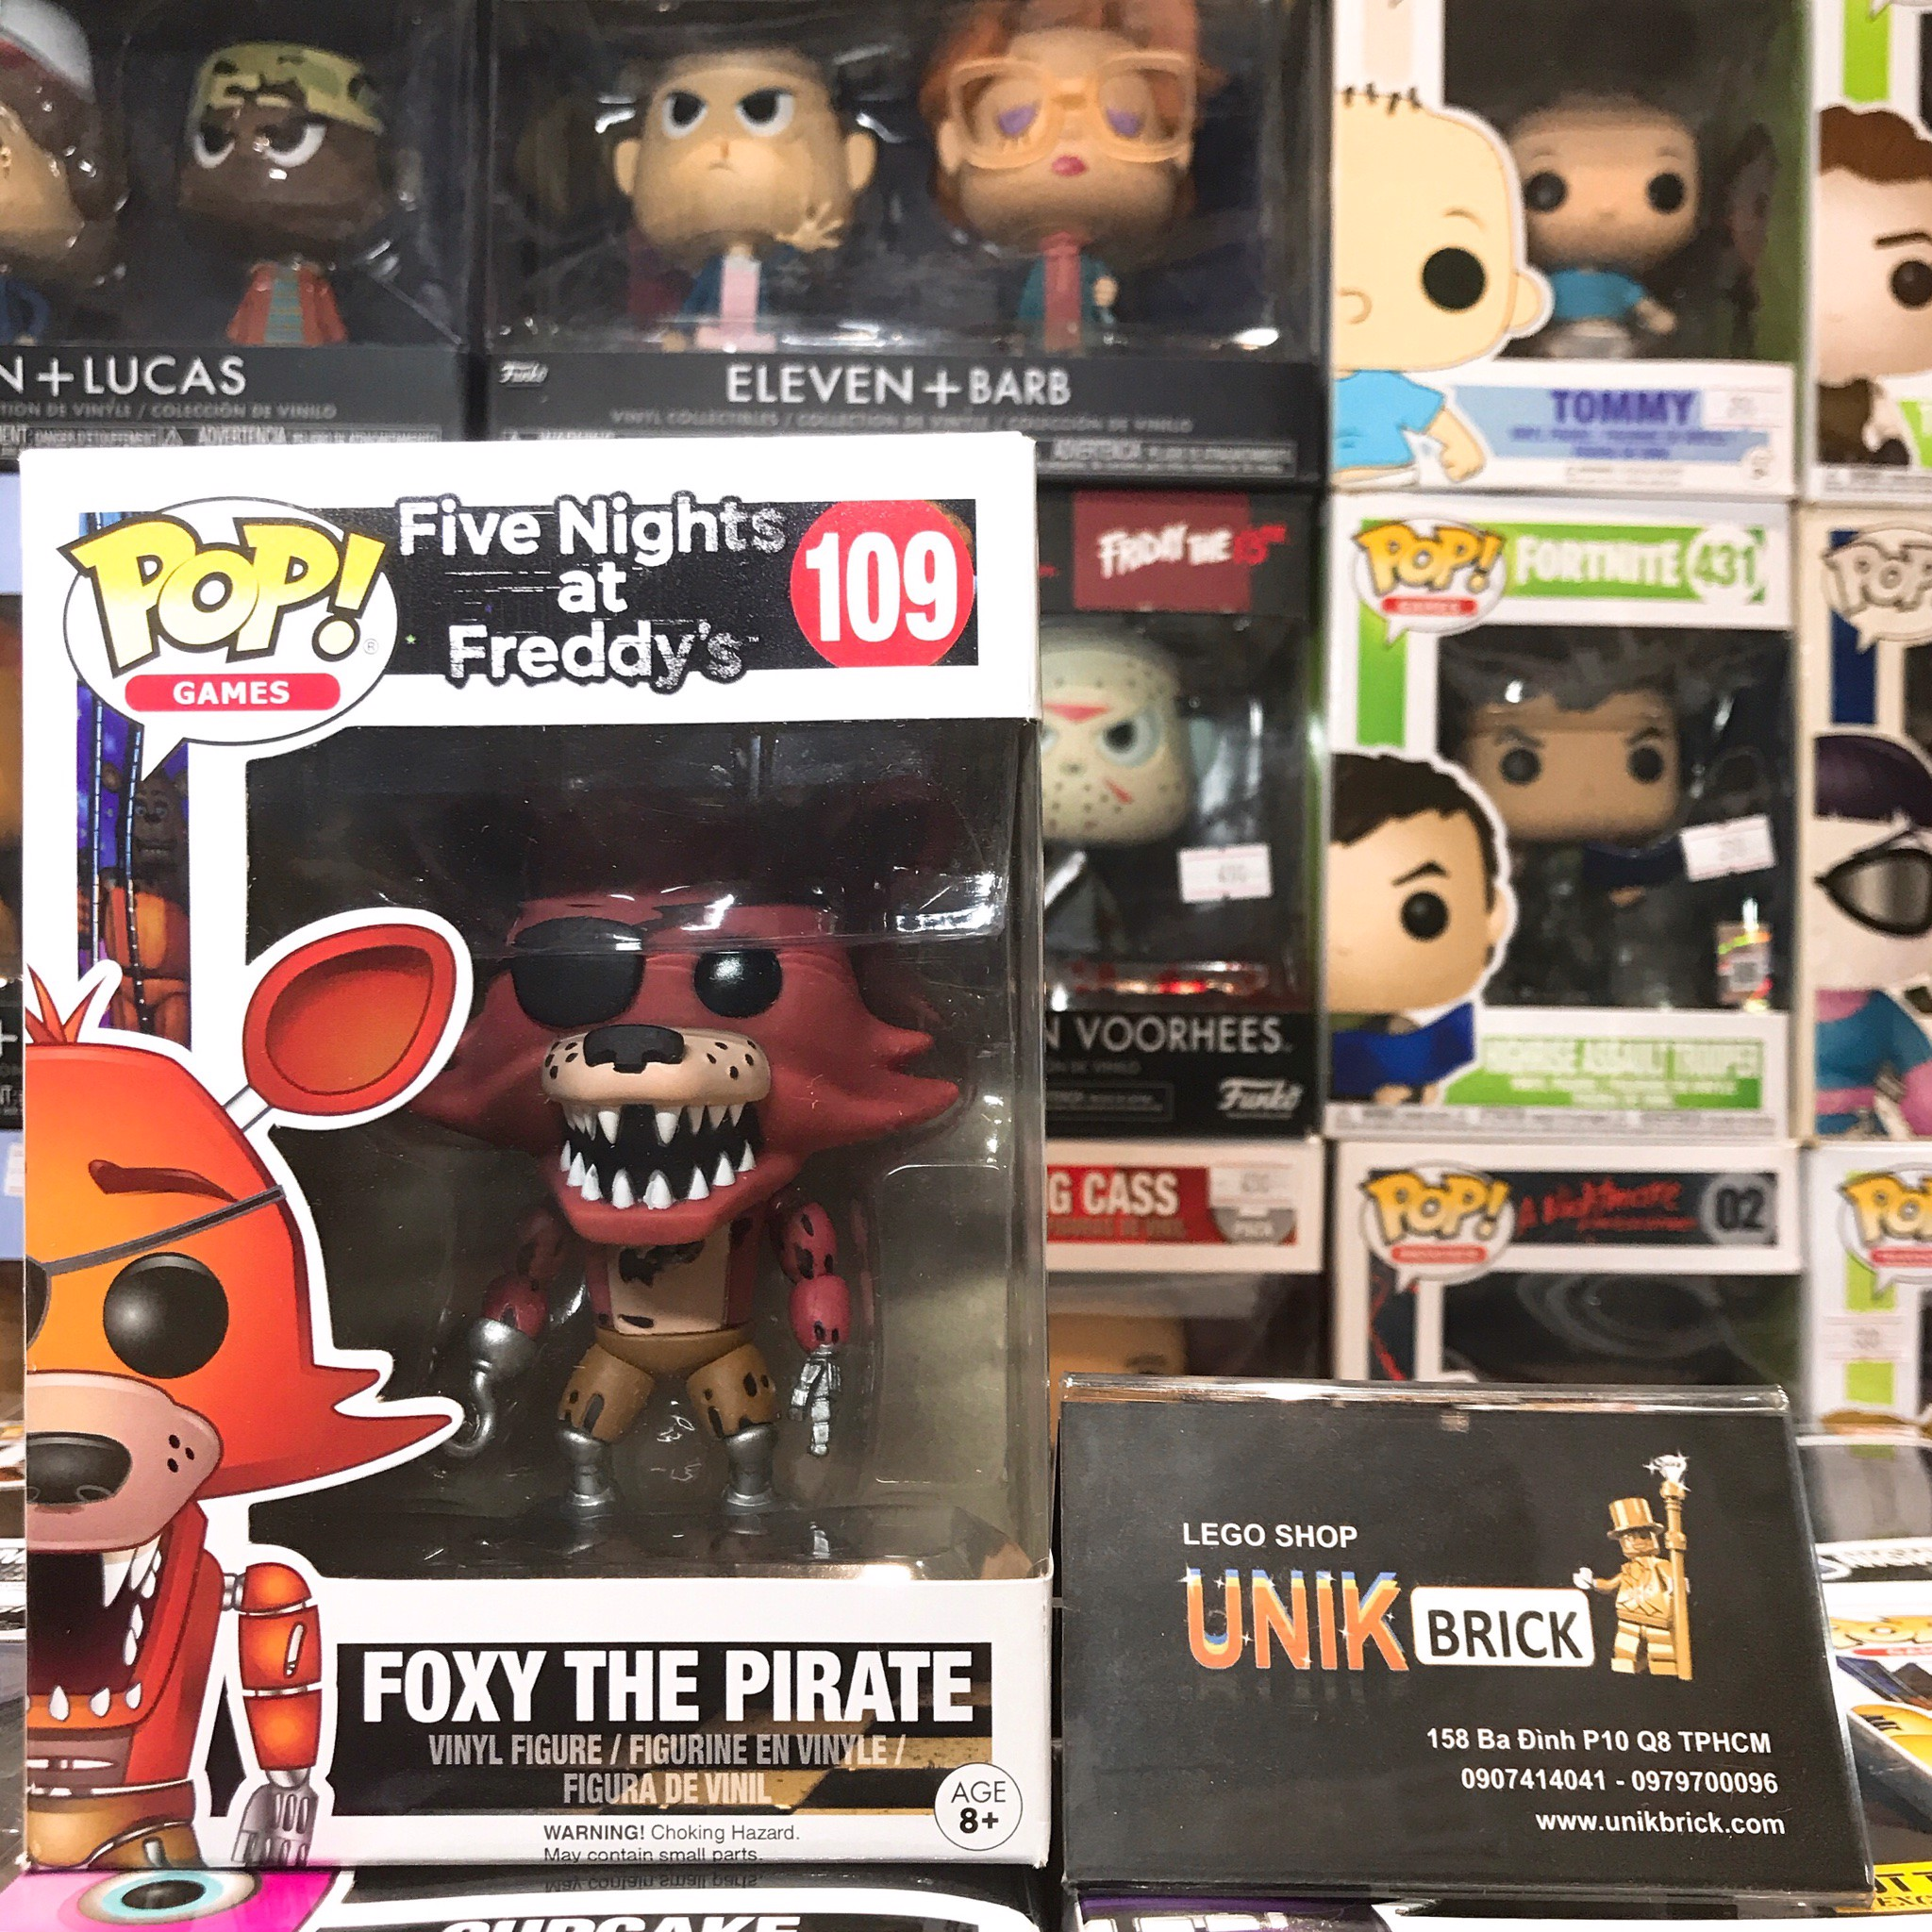 FUNKO POP Five Nights at Freddy's 109 Foxy The Pirate